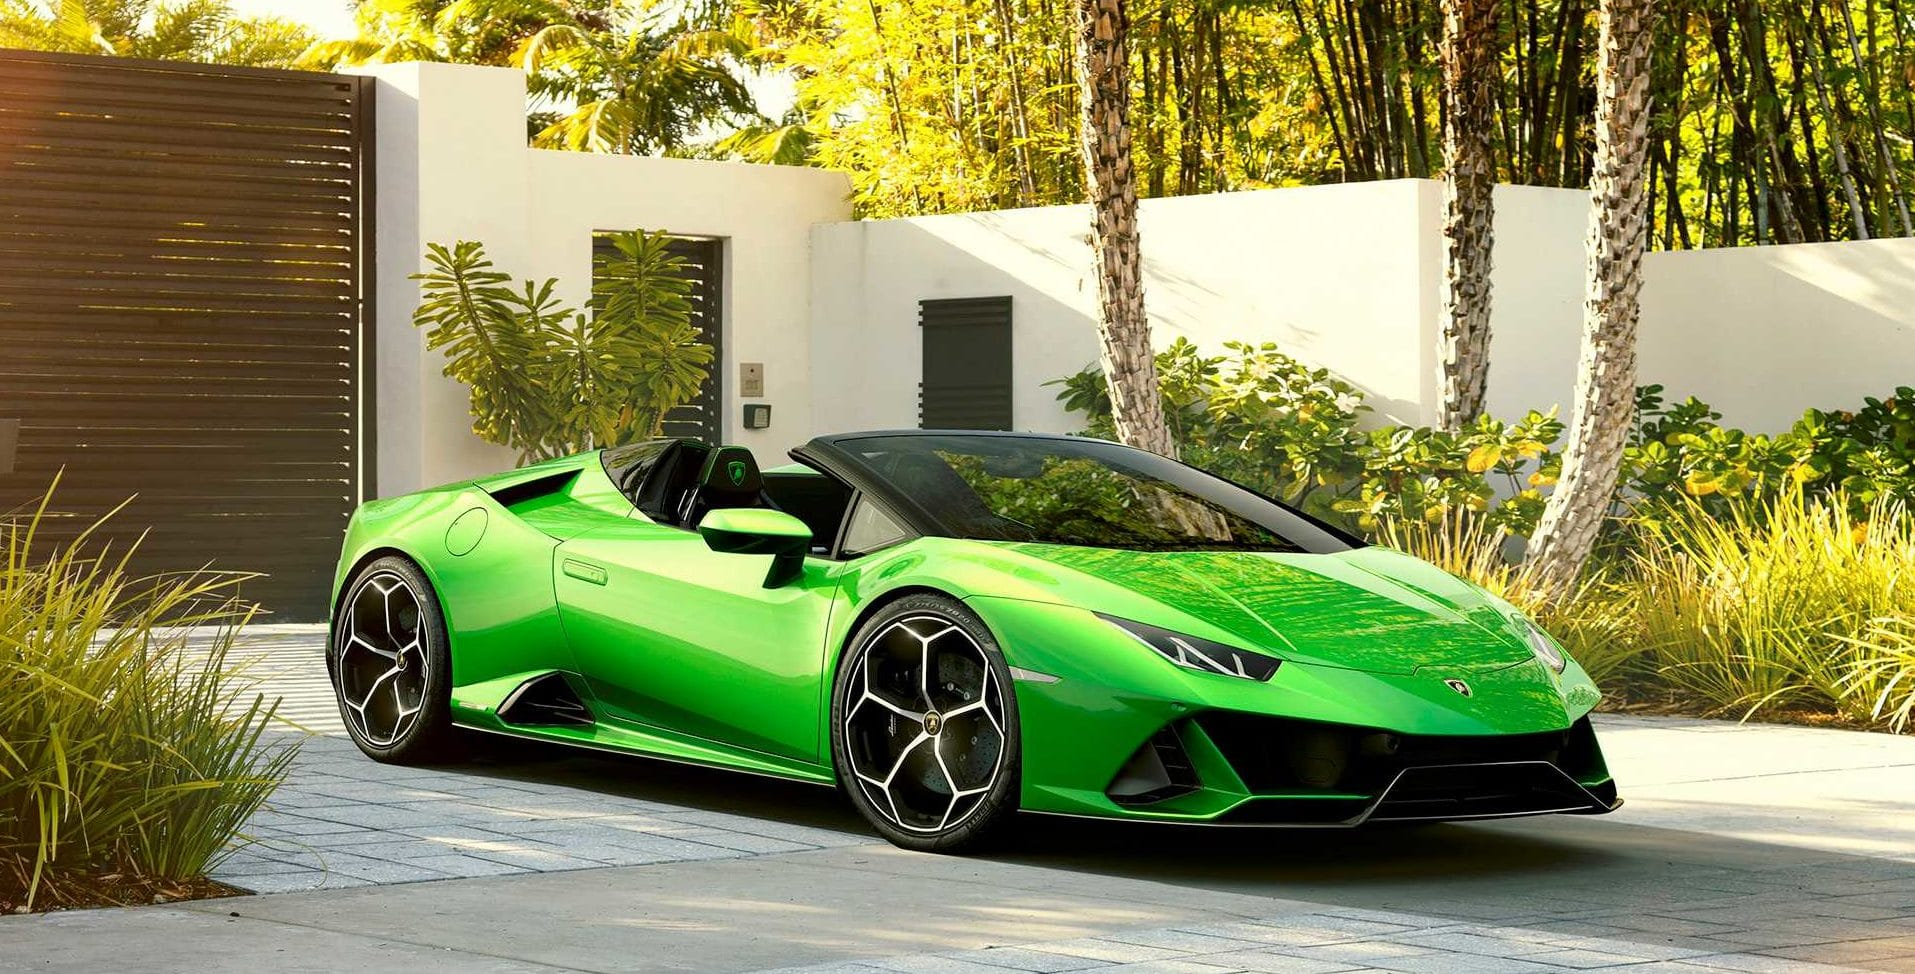 Lamborghini Unveils Its New Convertible The Huracan Evo Spyder